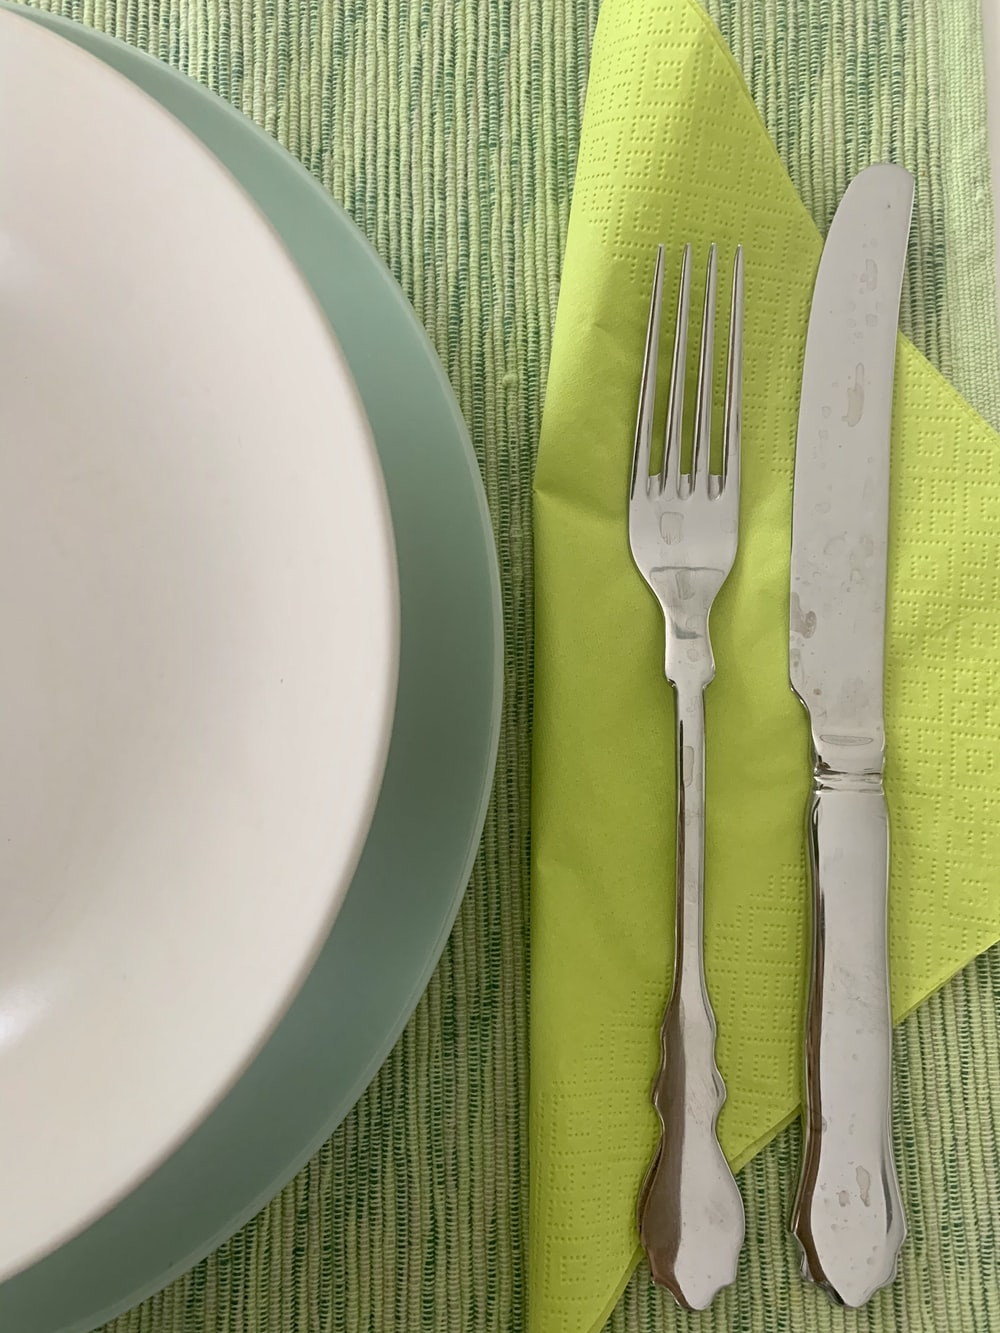 silver fork and bread knife on white ceramic plate